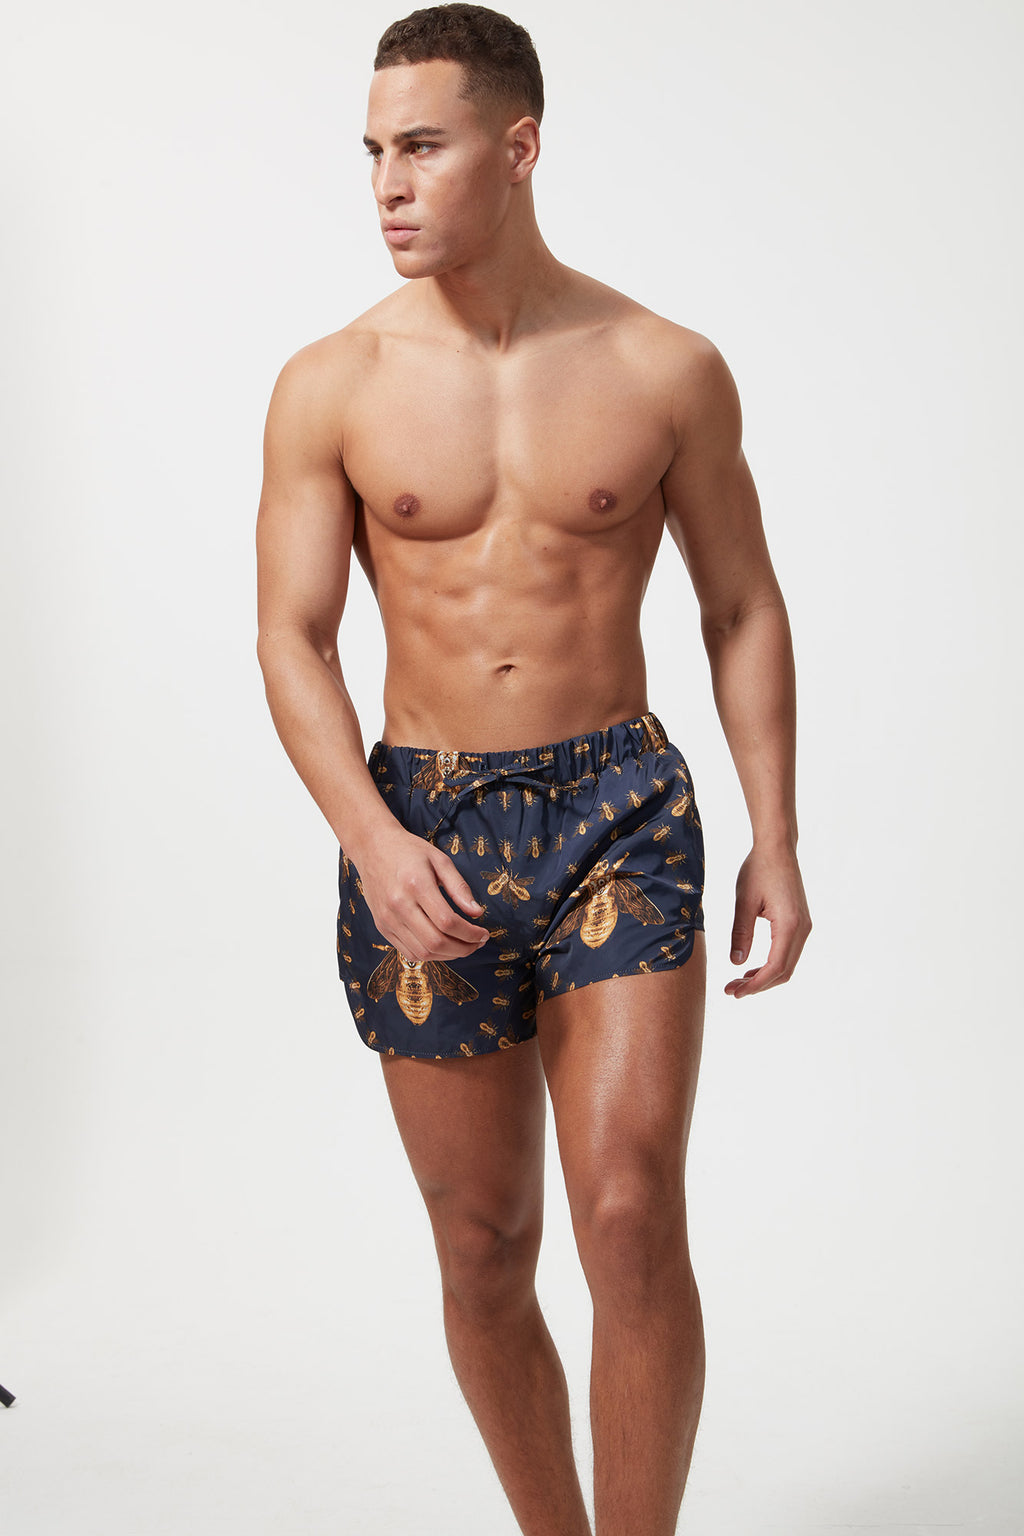 HERMANO PRINTED BEACH SHORT BEE BROACH BLUE - H E R M A N O